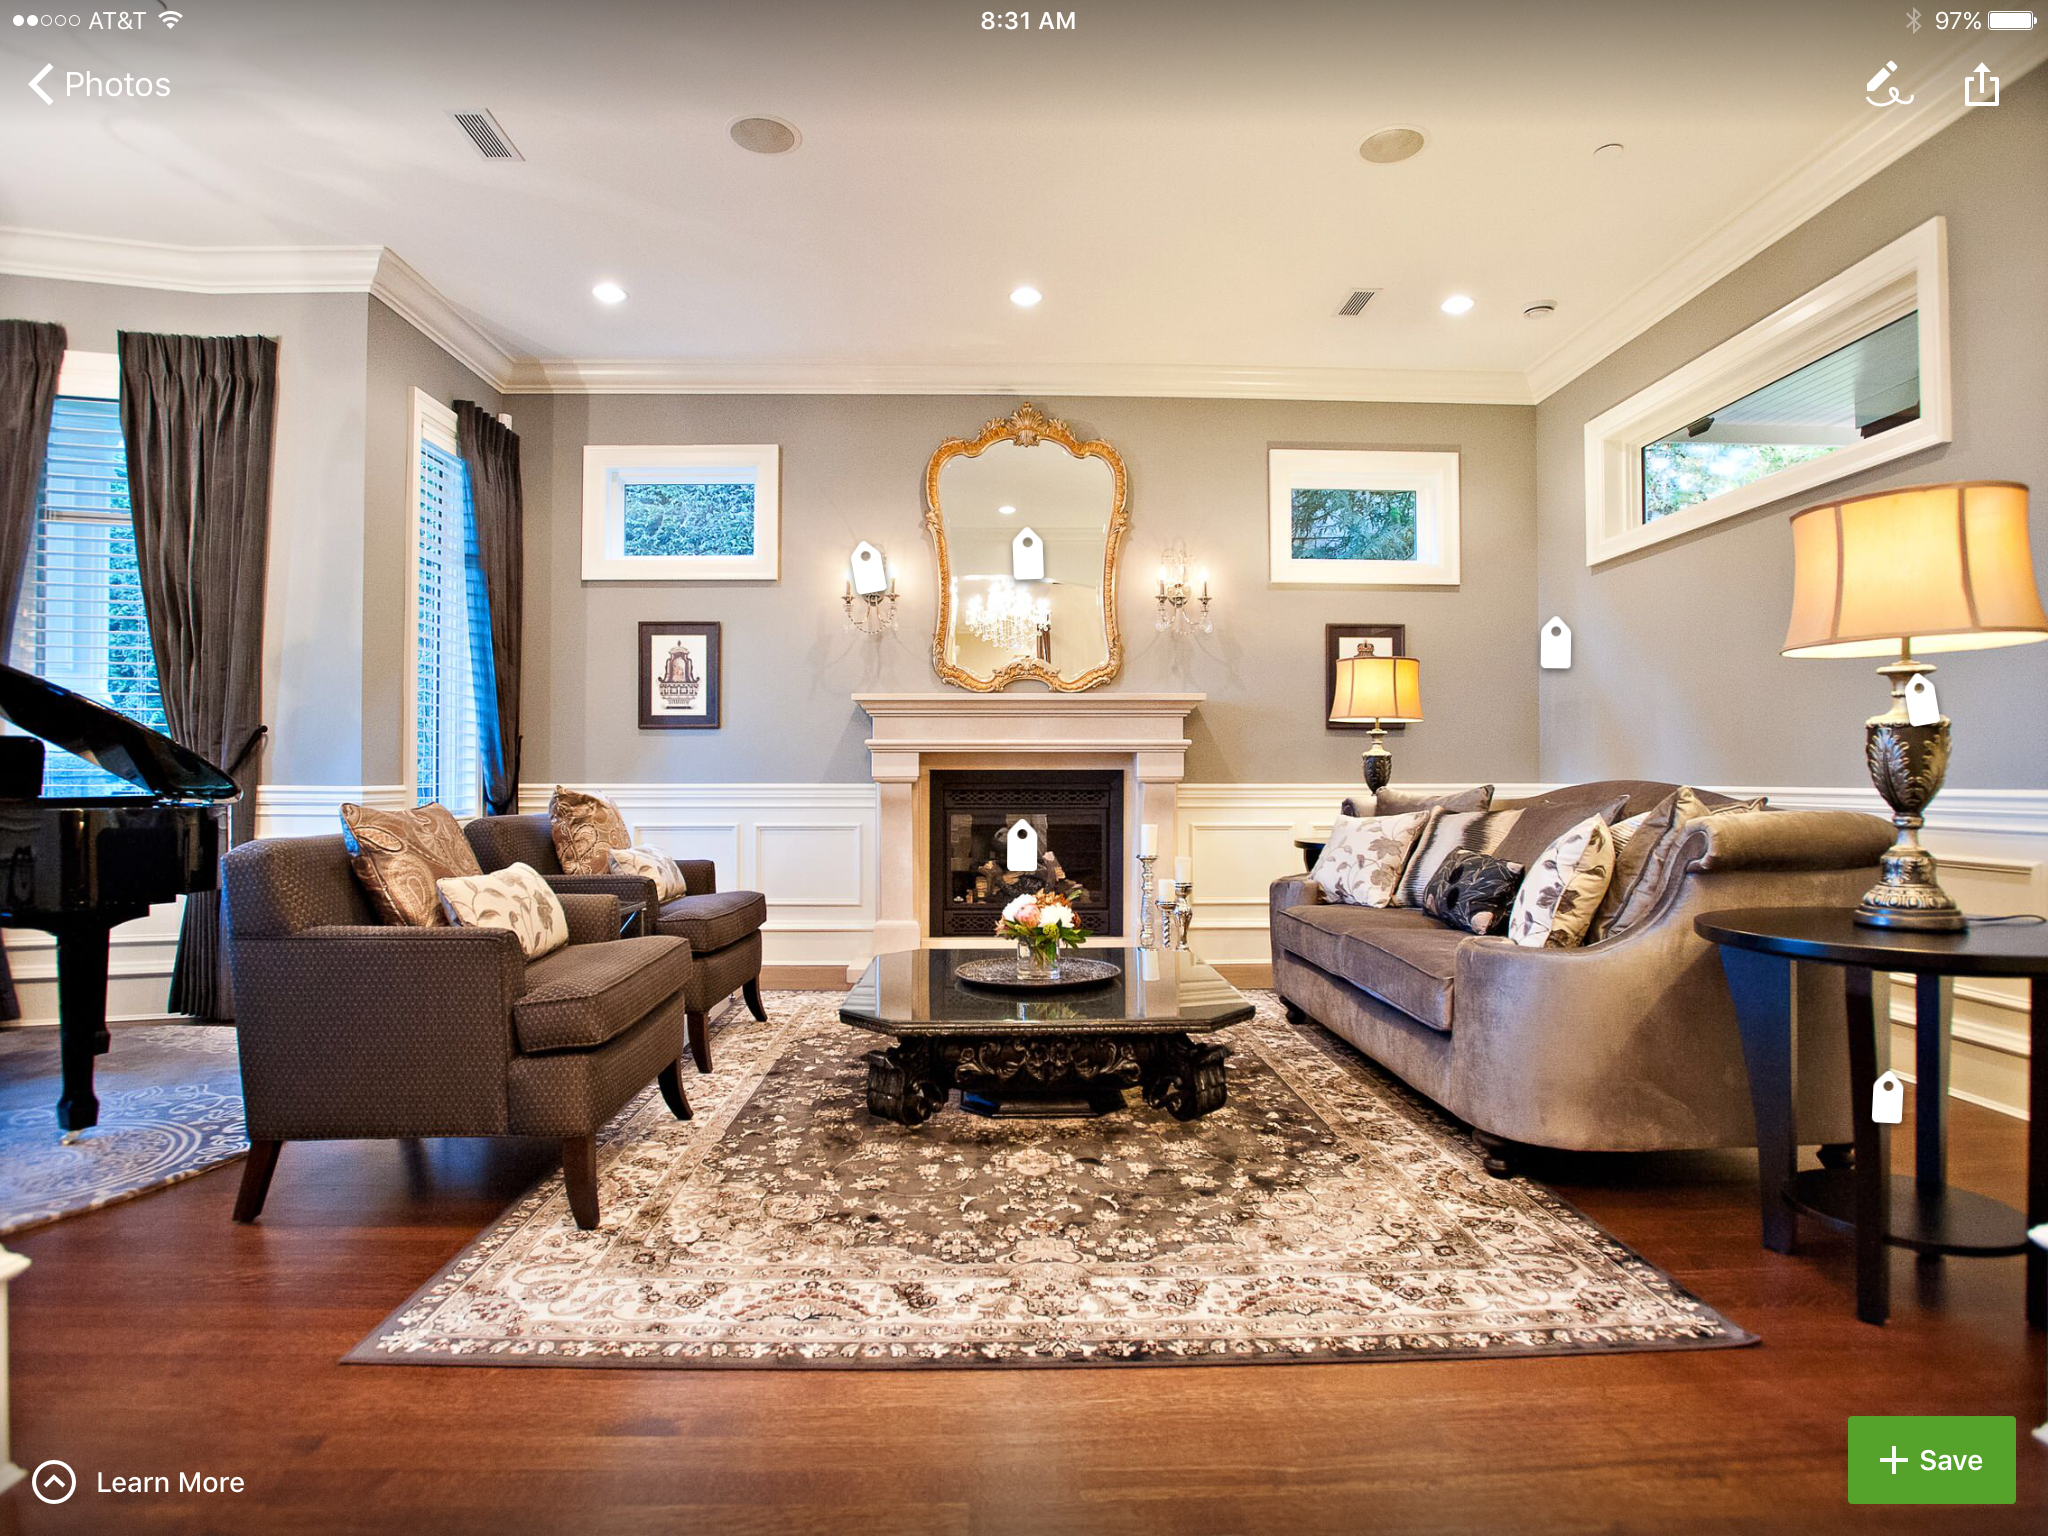 Bm Revere Pewter From Houzz With Brown Furniture